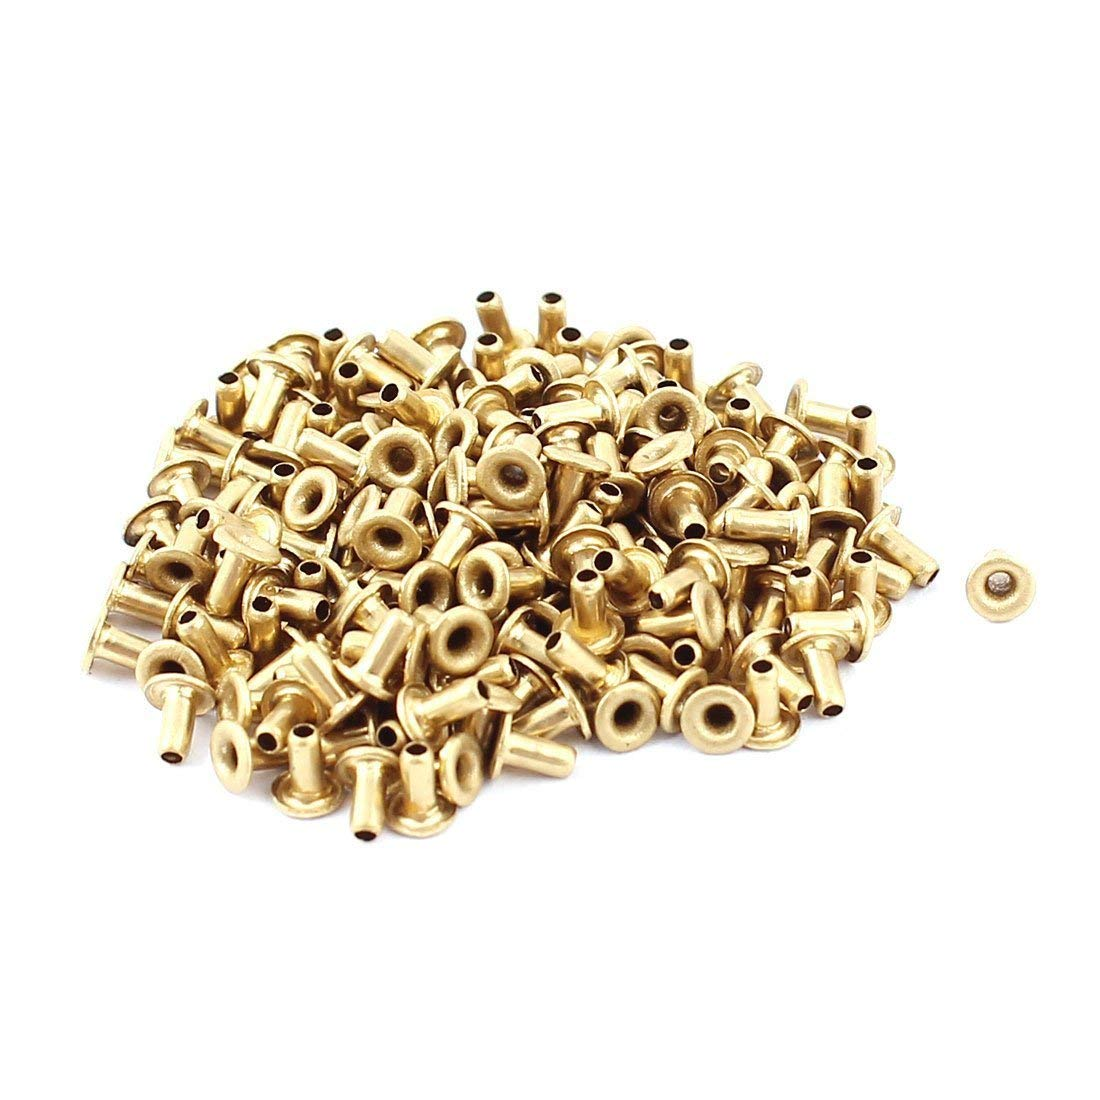 a15091700ux0367 M1.5x3 Through Hole Rivets Hollow Eyelets PCB Circuit Board Brass Plated Metal 200 Pack